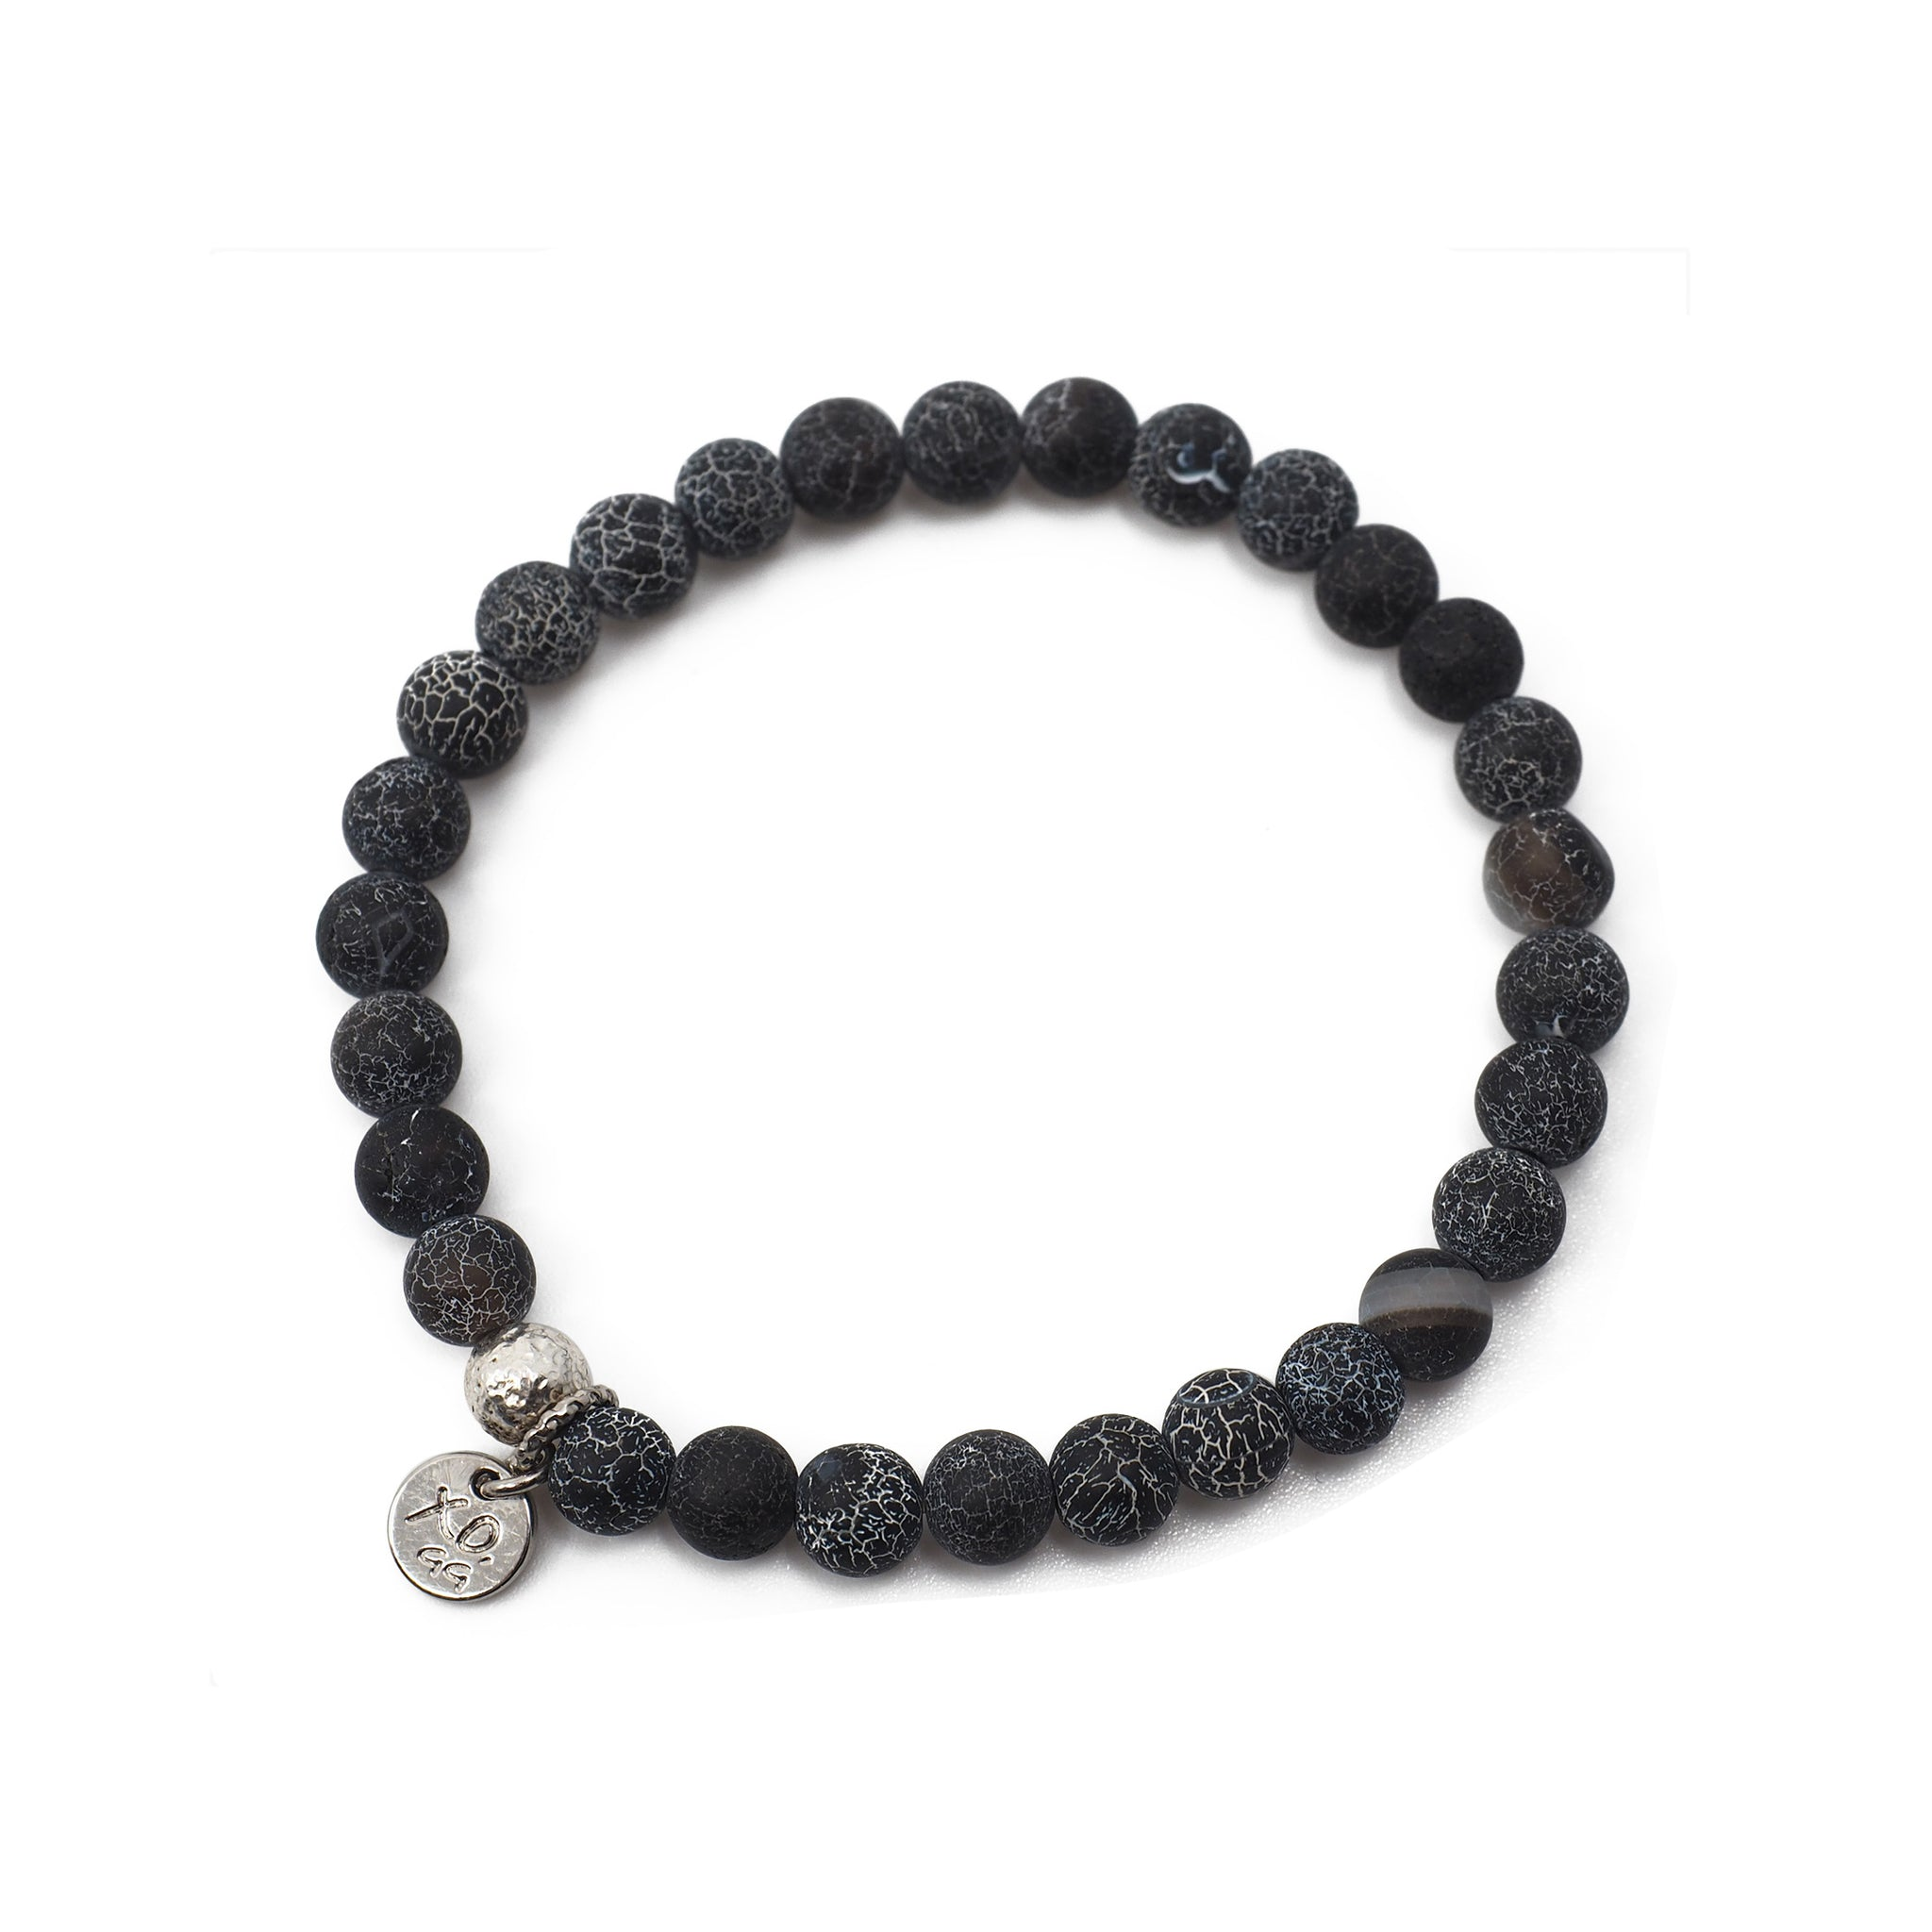 The Luna Bracelet in Black Crackle